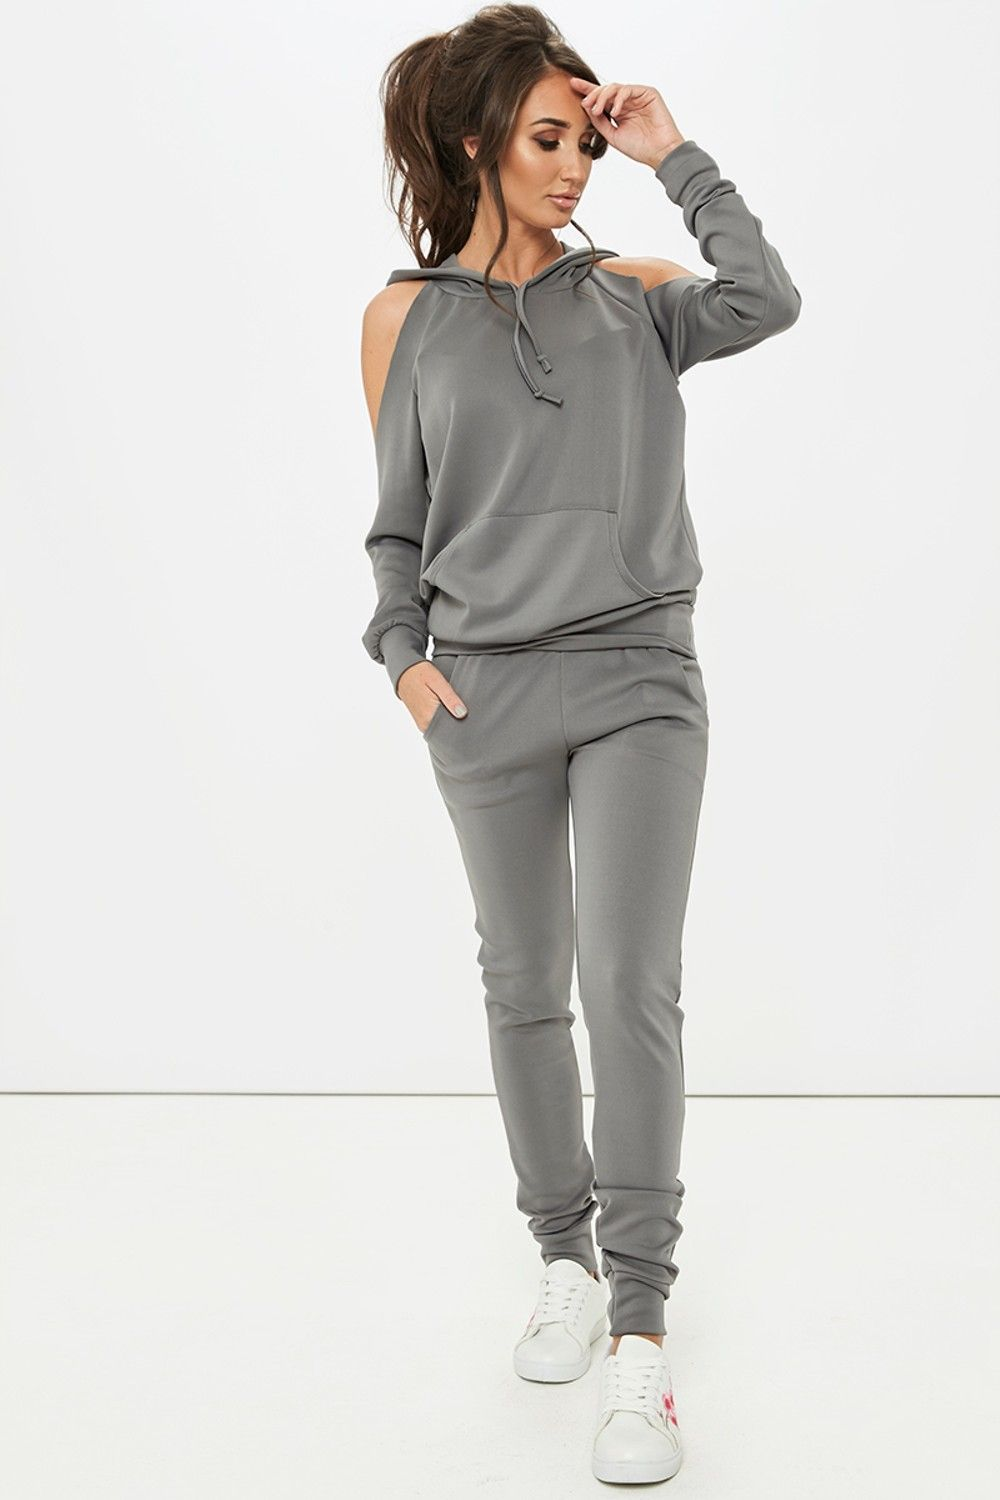 797a7a5b21 Megan McKenna Grey Cold Shoulder Loungewear Set in 2019 ...